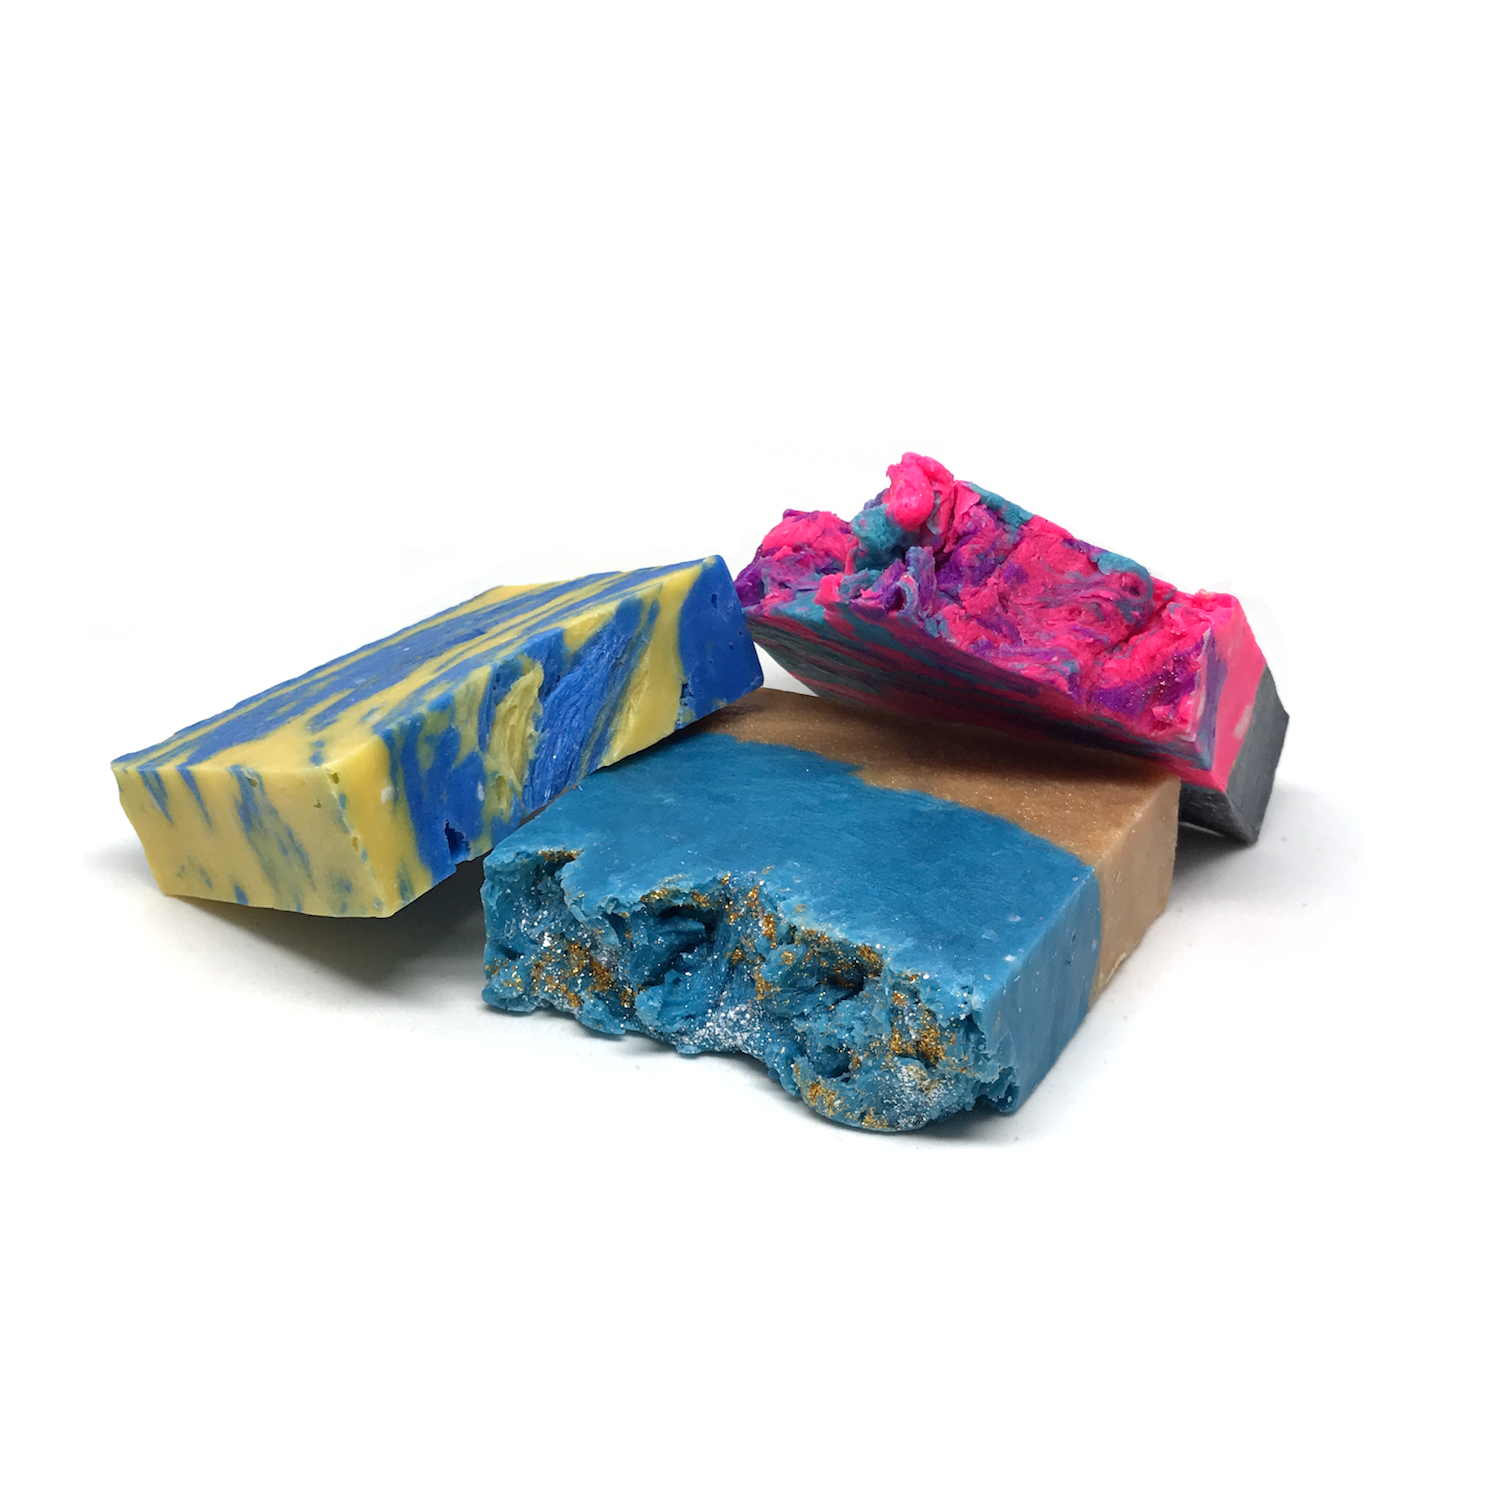 We are currently offering Lather Bar's Beach Bum soap bars!  Beach Bum contains ground Pumice Powder in the bottom layer for gentle exfoliation just like you were at the beach!  Smells like:A gorgeous day at the beach complete with warm sand, sea spray, salt, jasmine and mandarin !